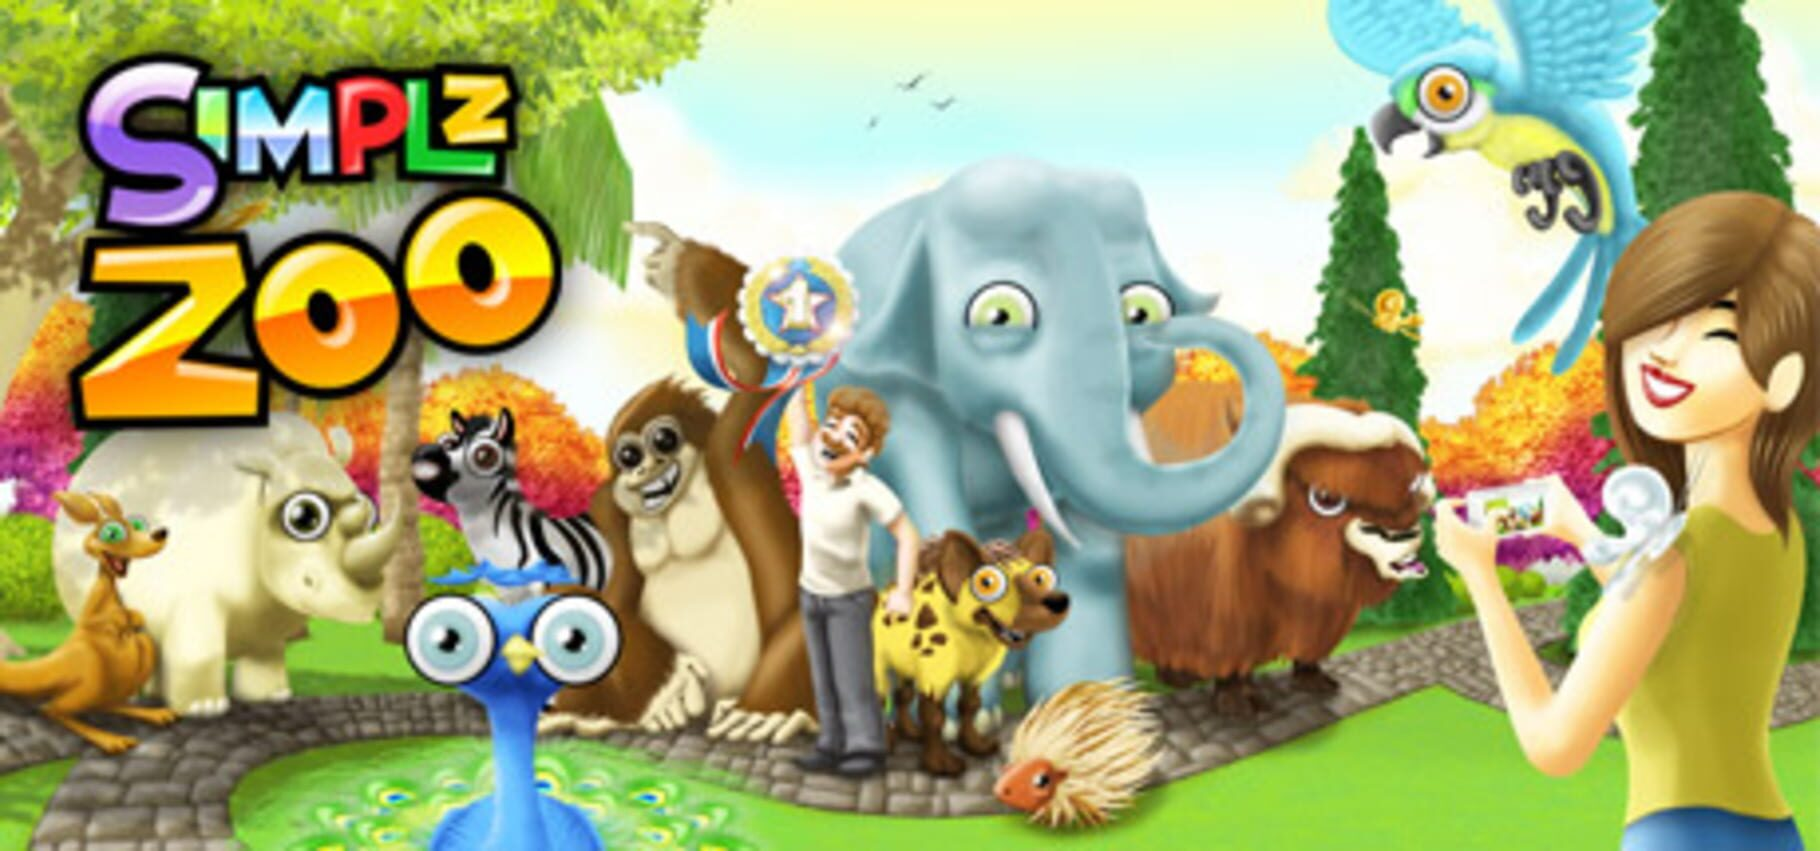 buy Simplz Zoo cd key for all platform